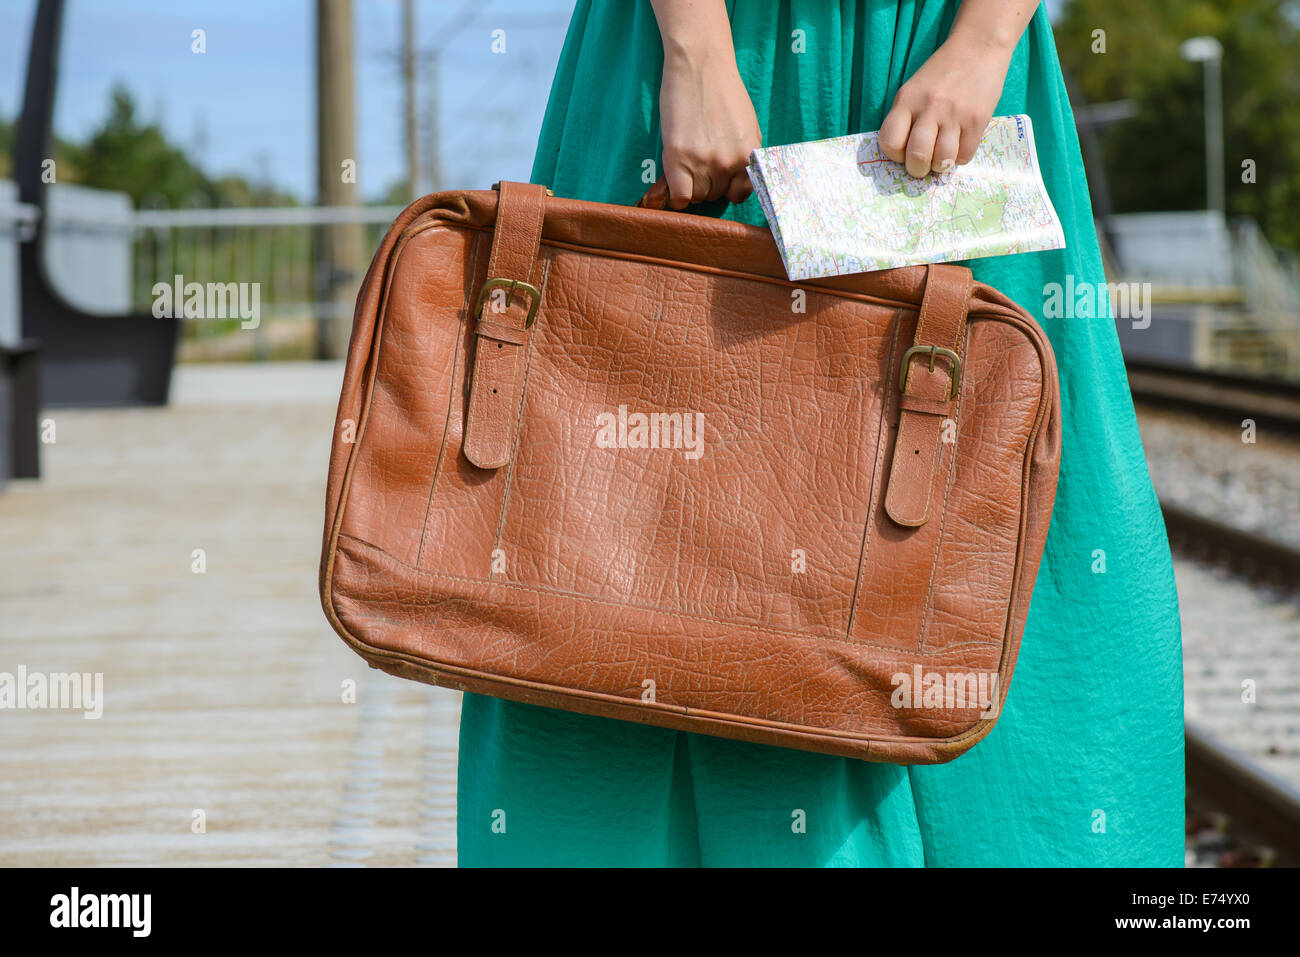 Girl in a holding a map and suitcase at station - Stock Image